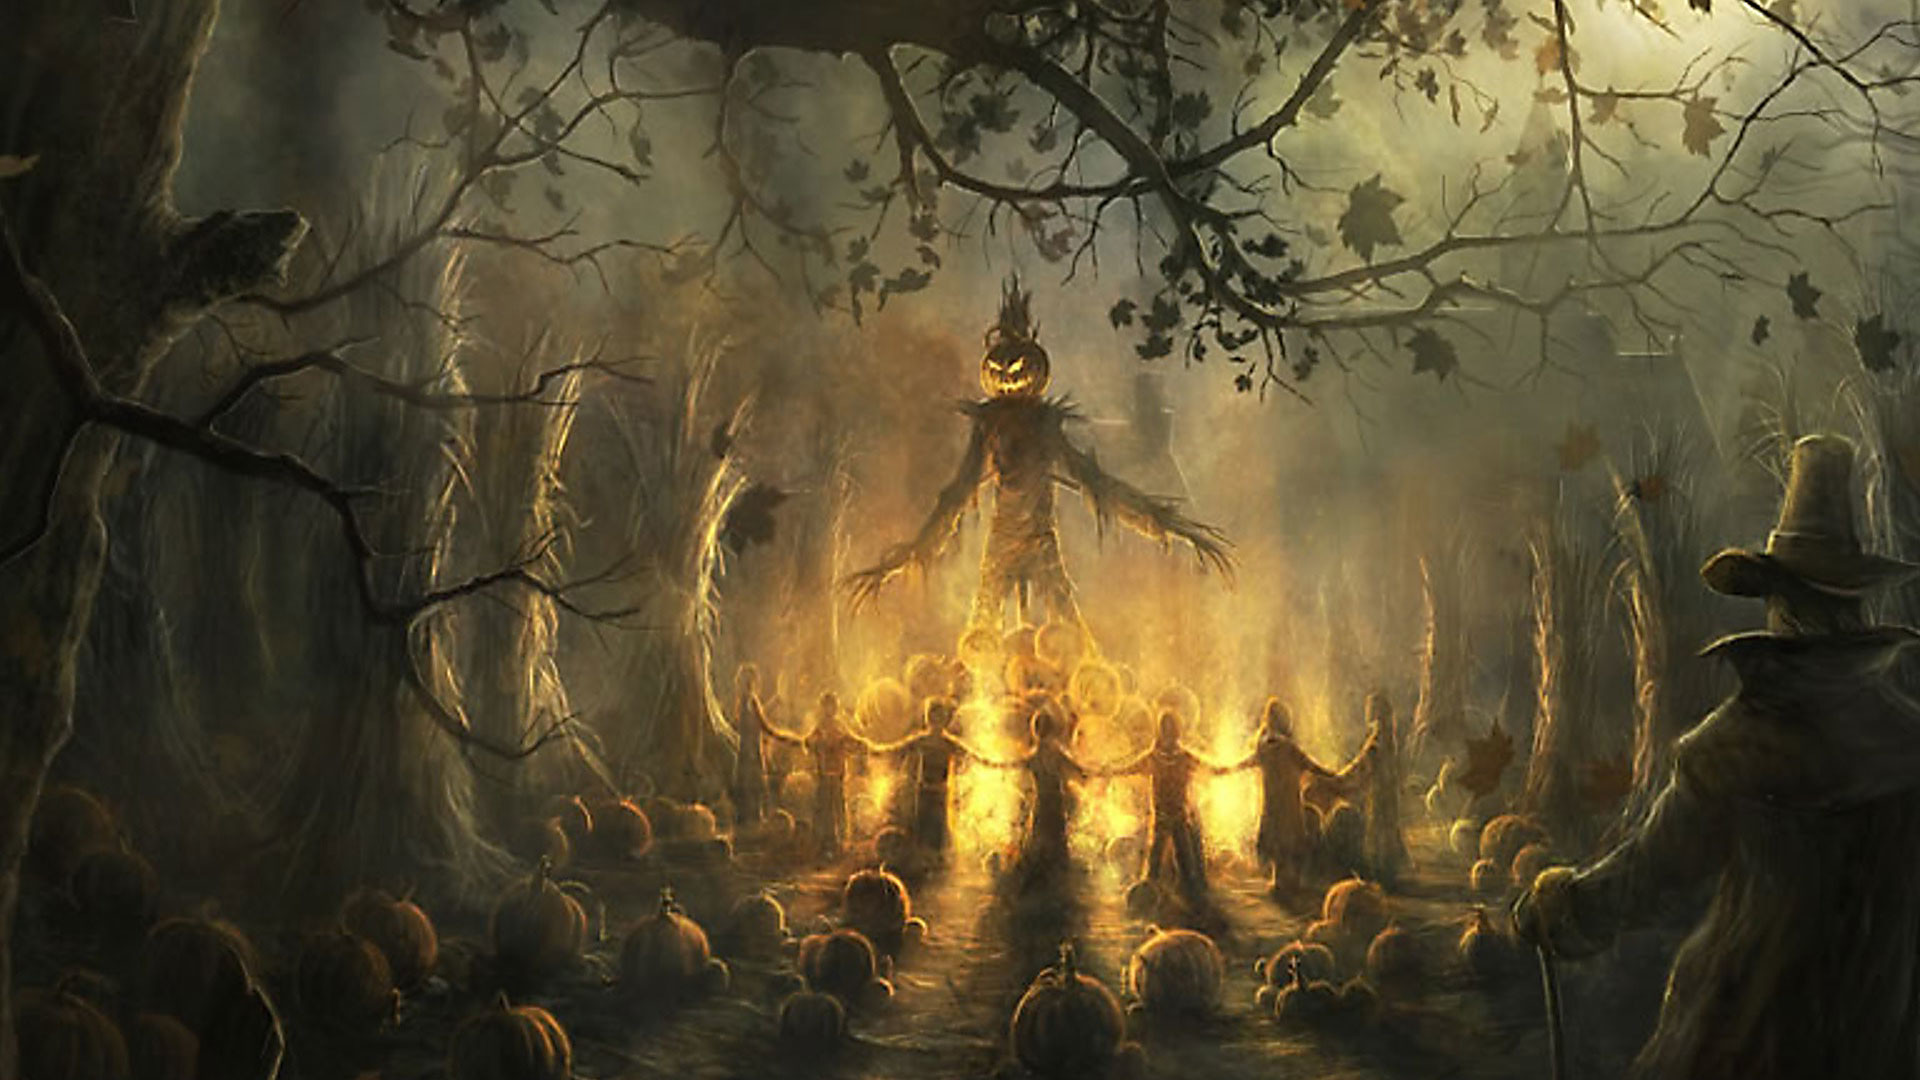 Halloween Pumpkin Scary Wallpaper Data Src Download Spooky Dark Halloween Background 1920x1080 Download Hd Wallpaper Wallpapertip